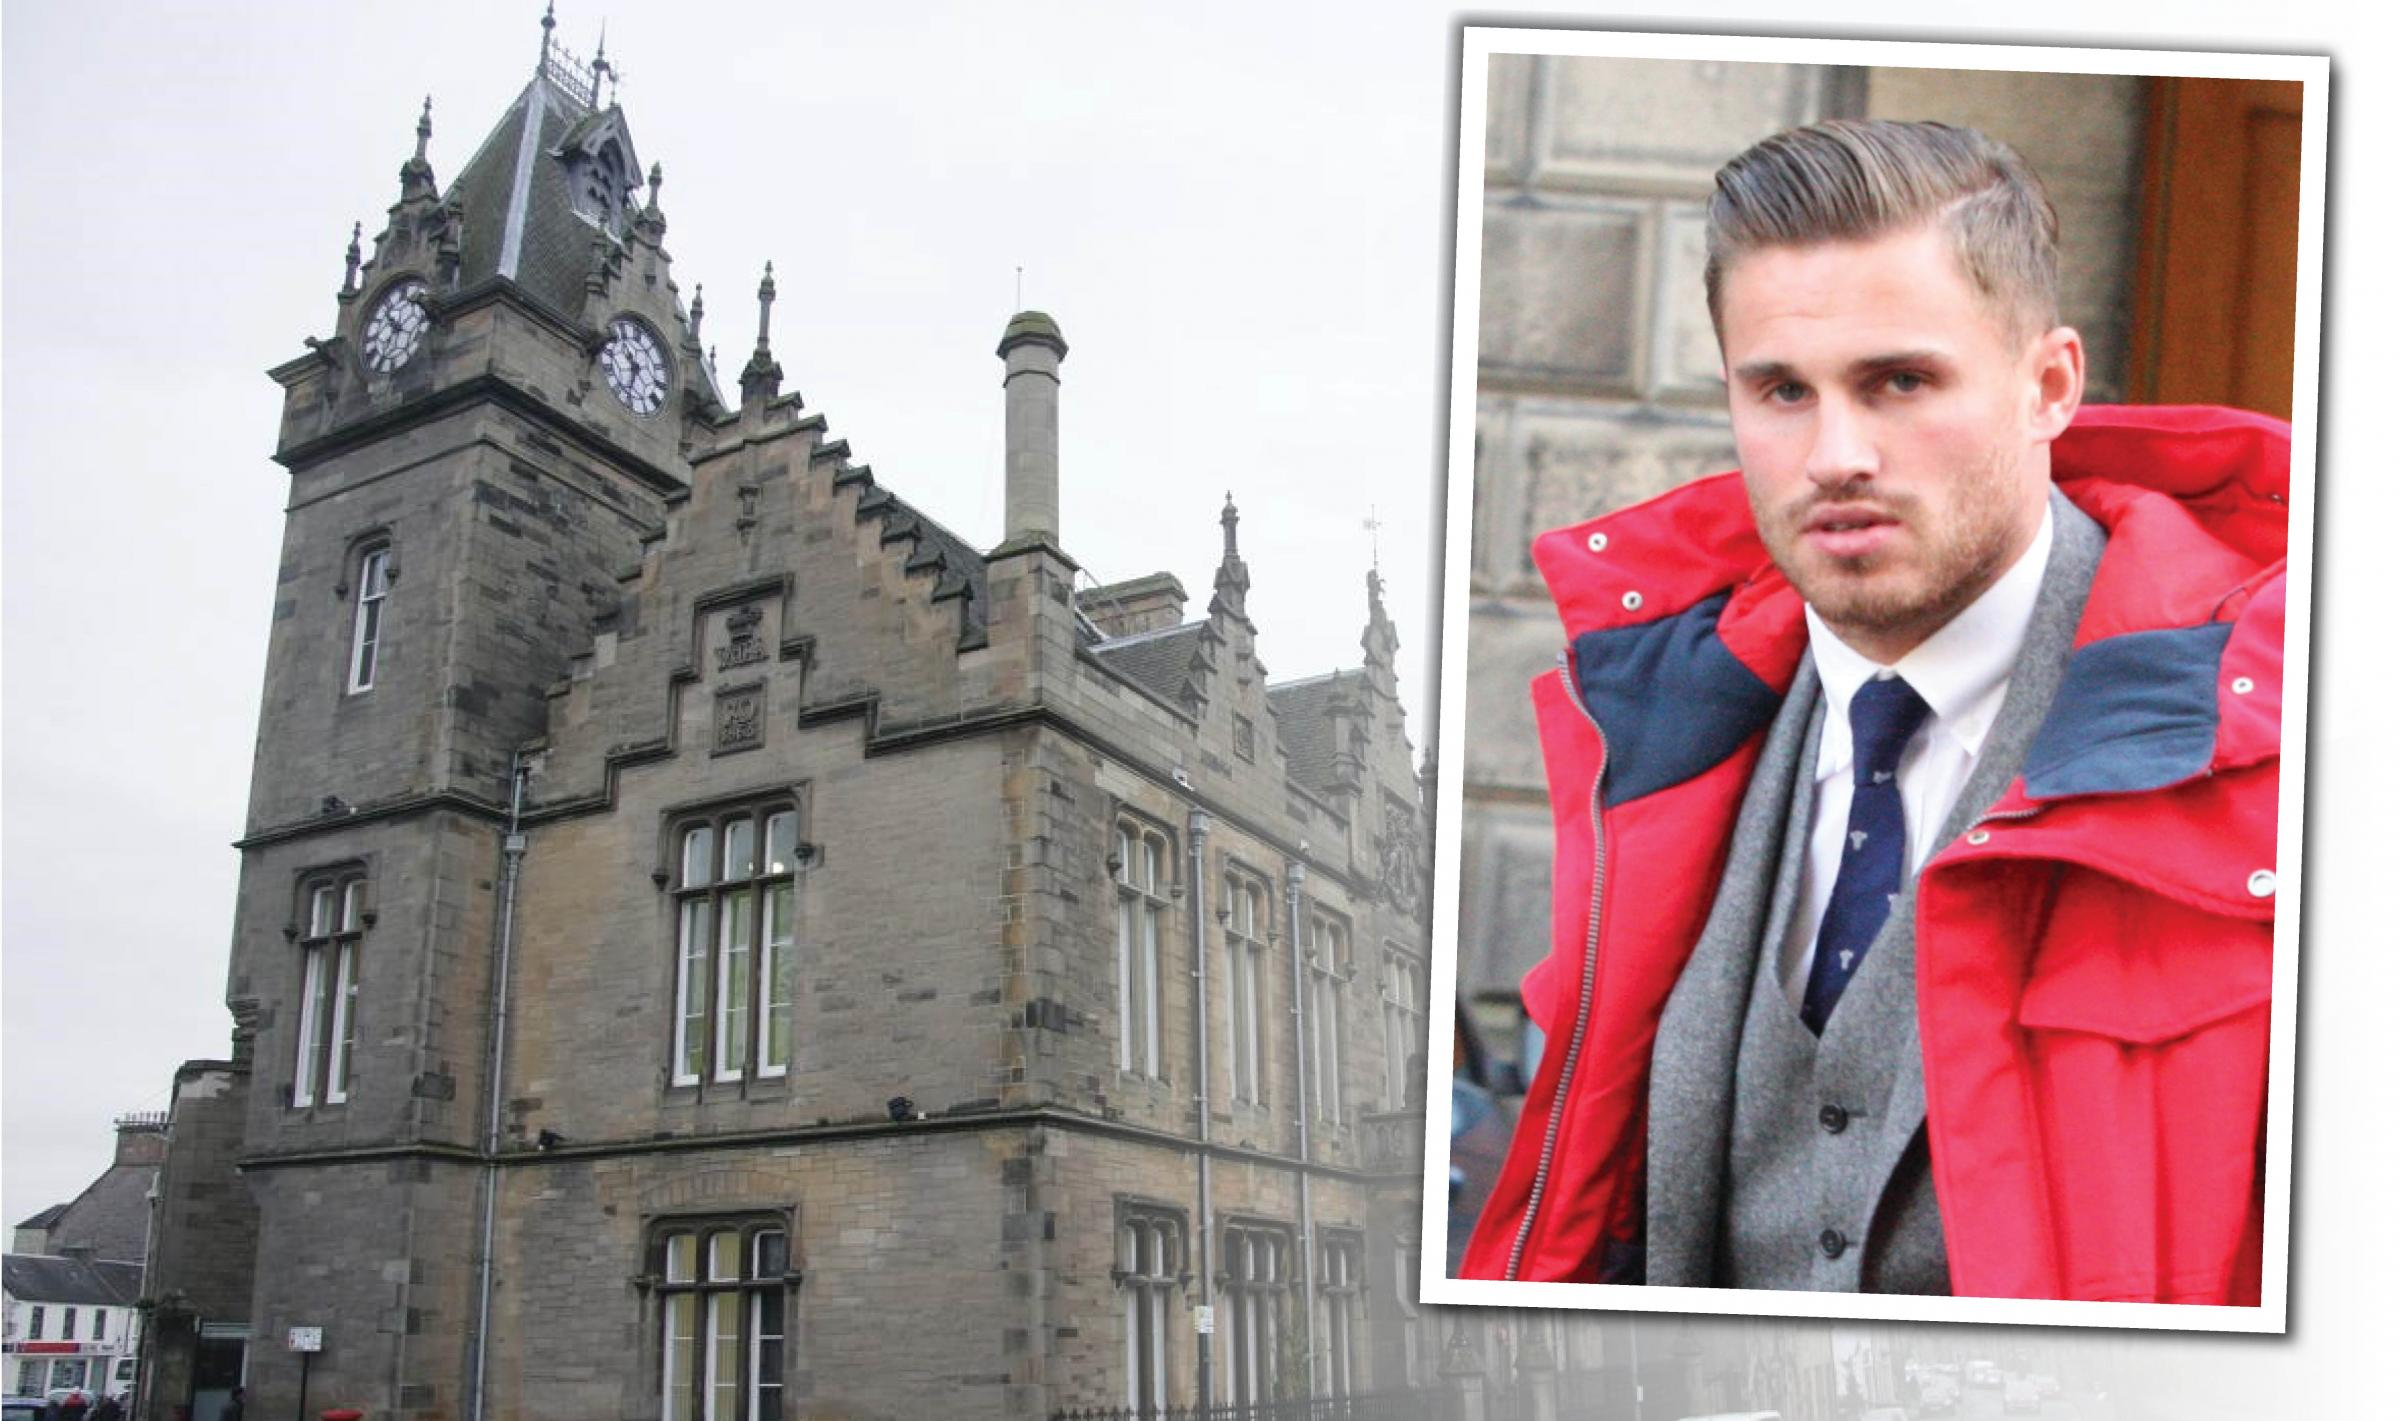 David Goodwillie was declared bankrupt at Alloa Sheriff Court last week